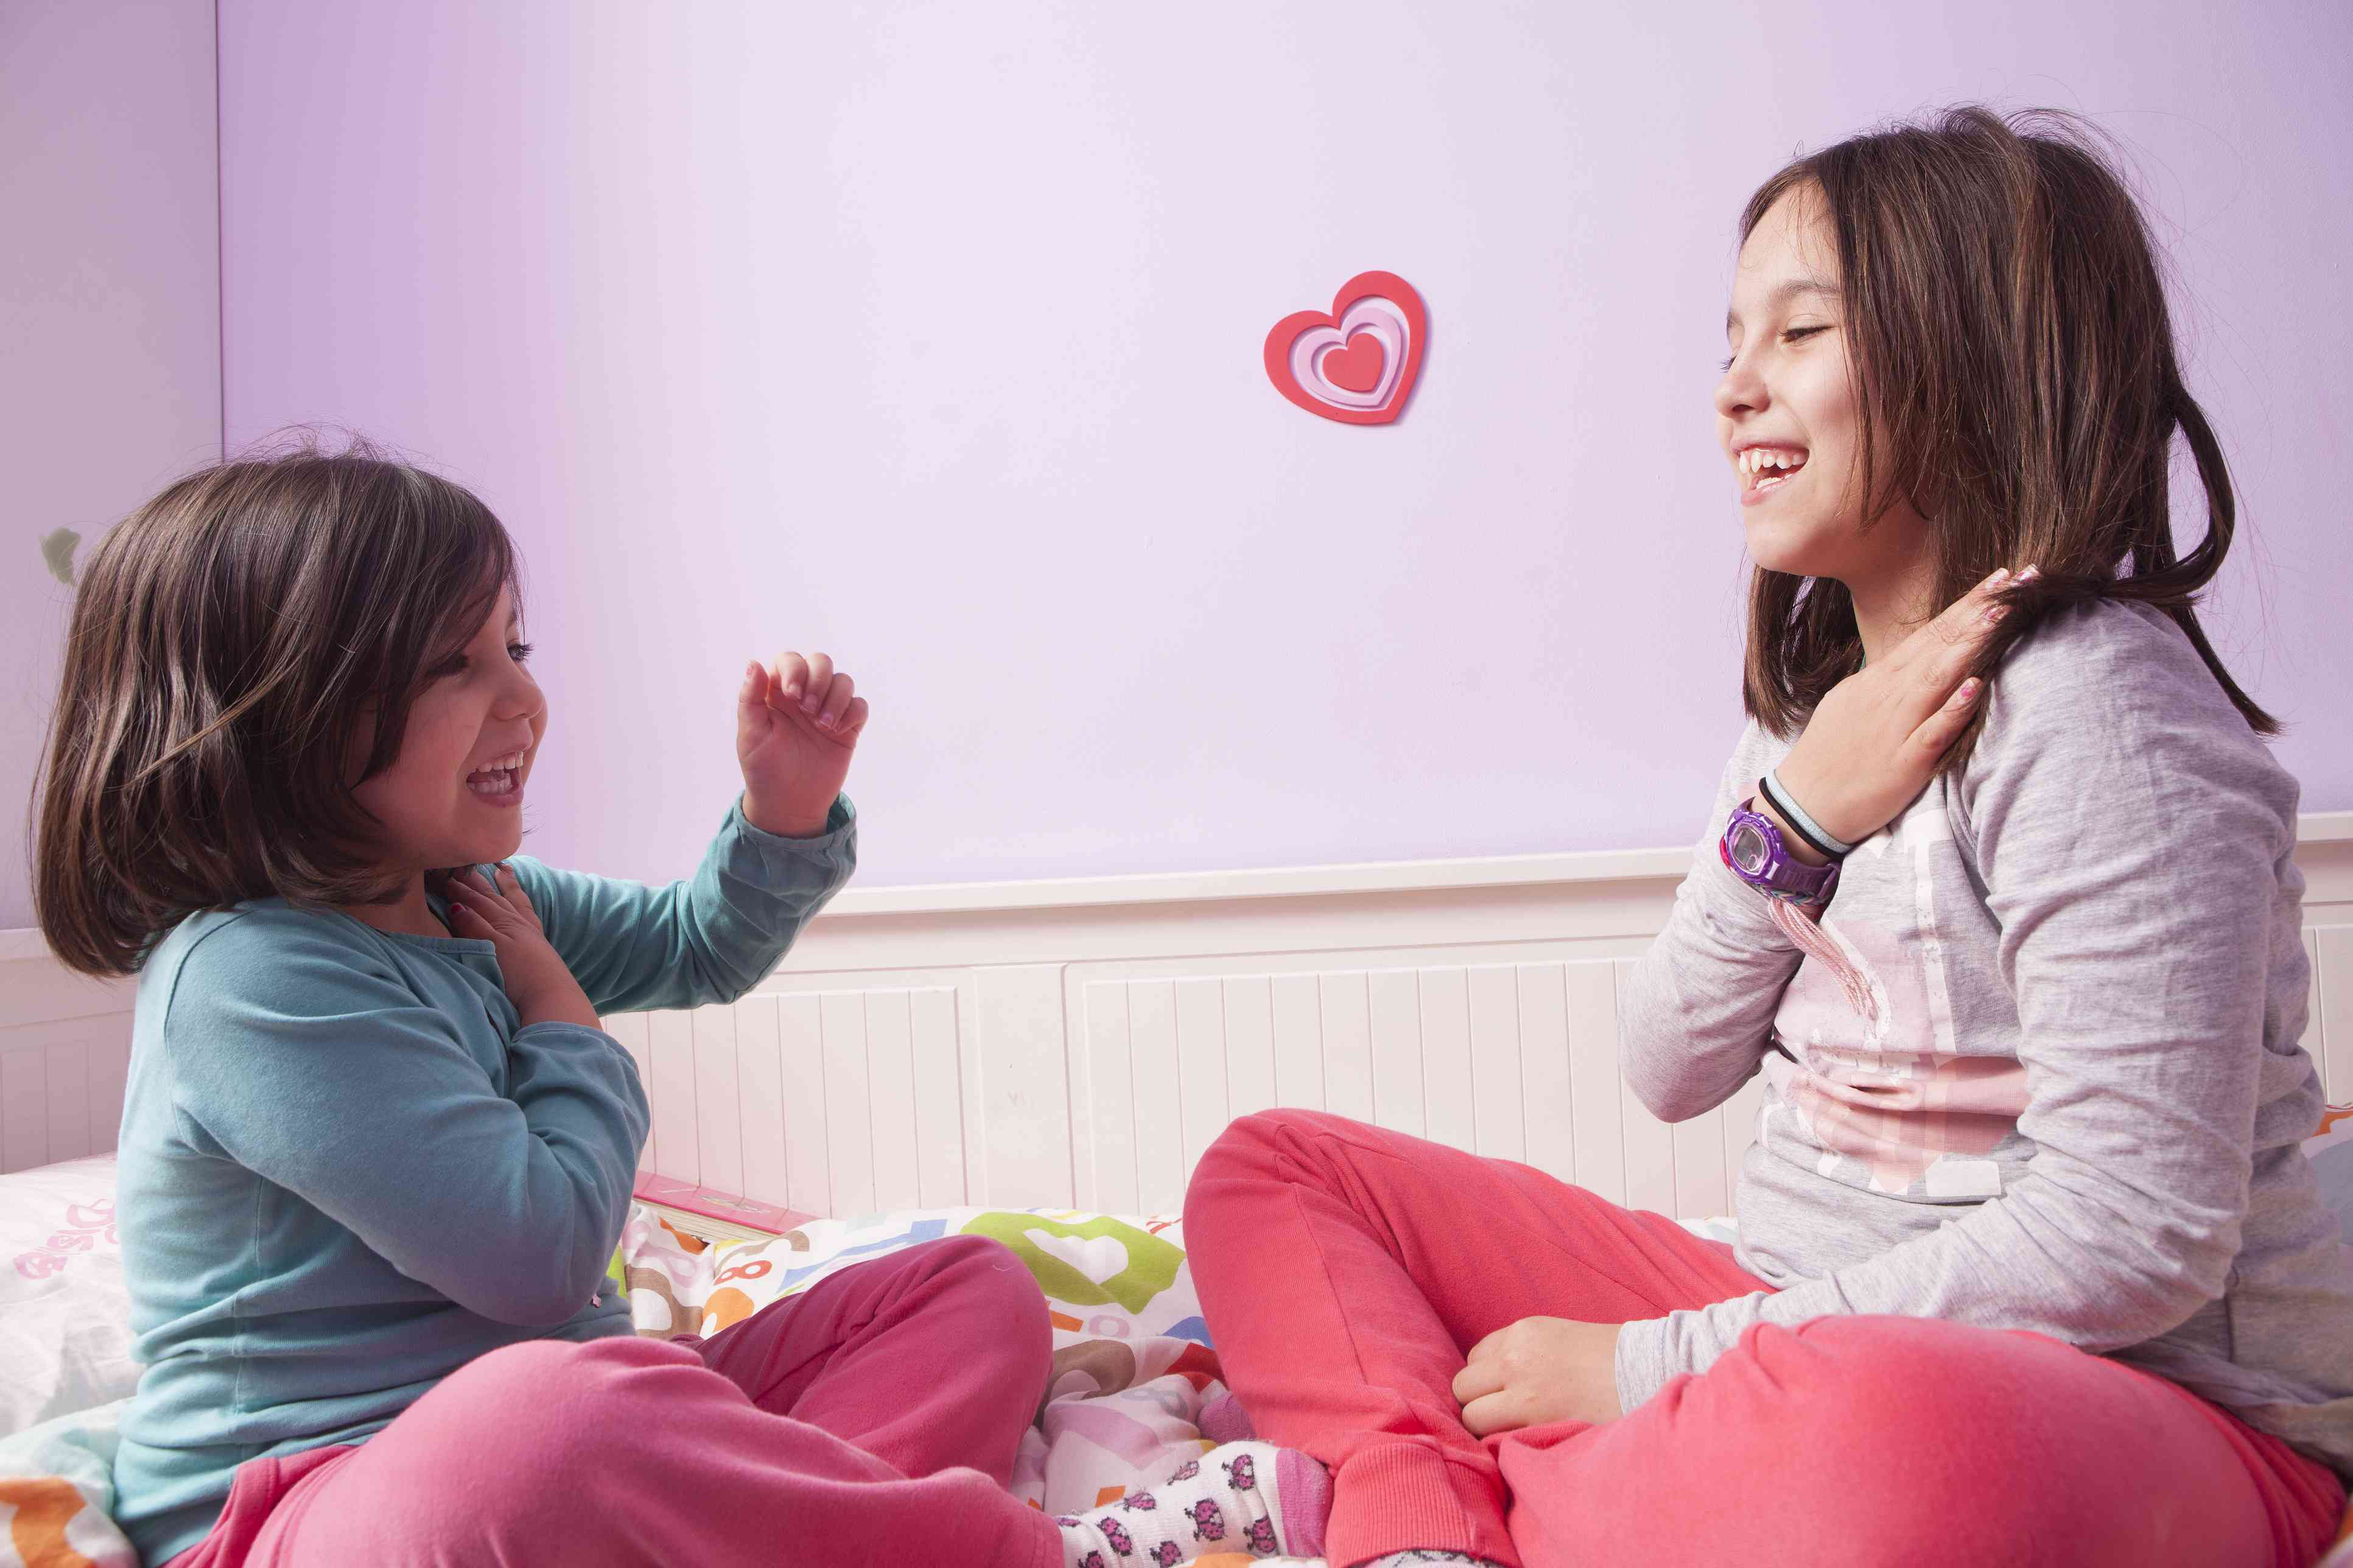 Two young children playing together in a brightly painted room